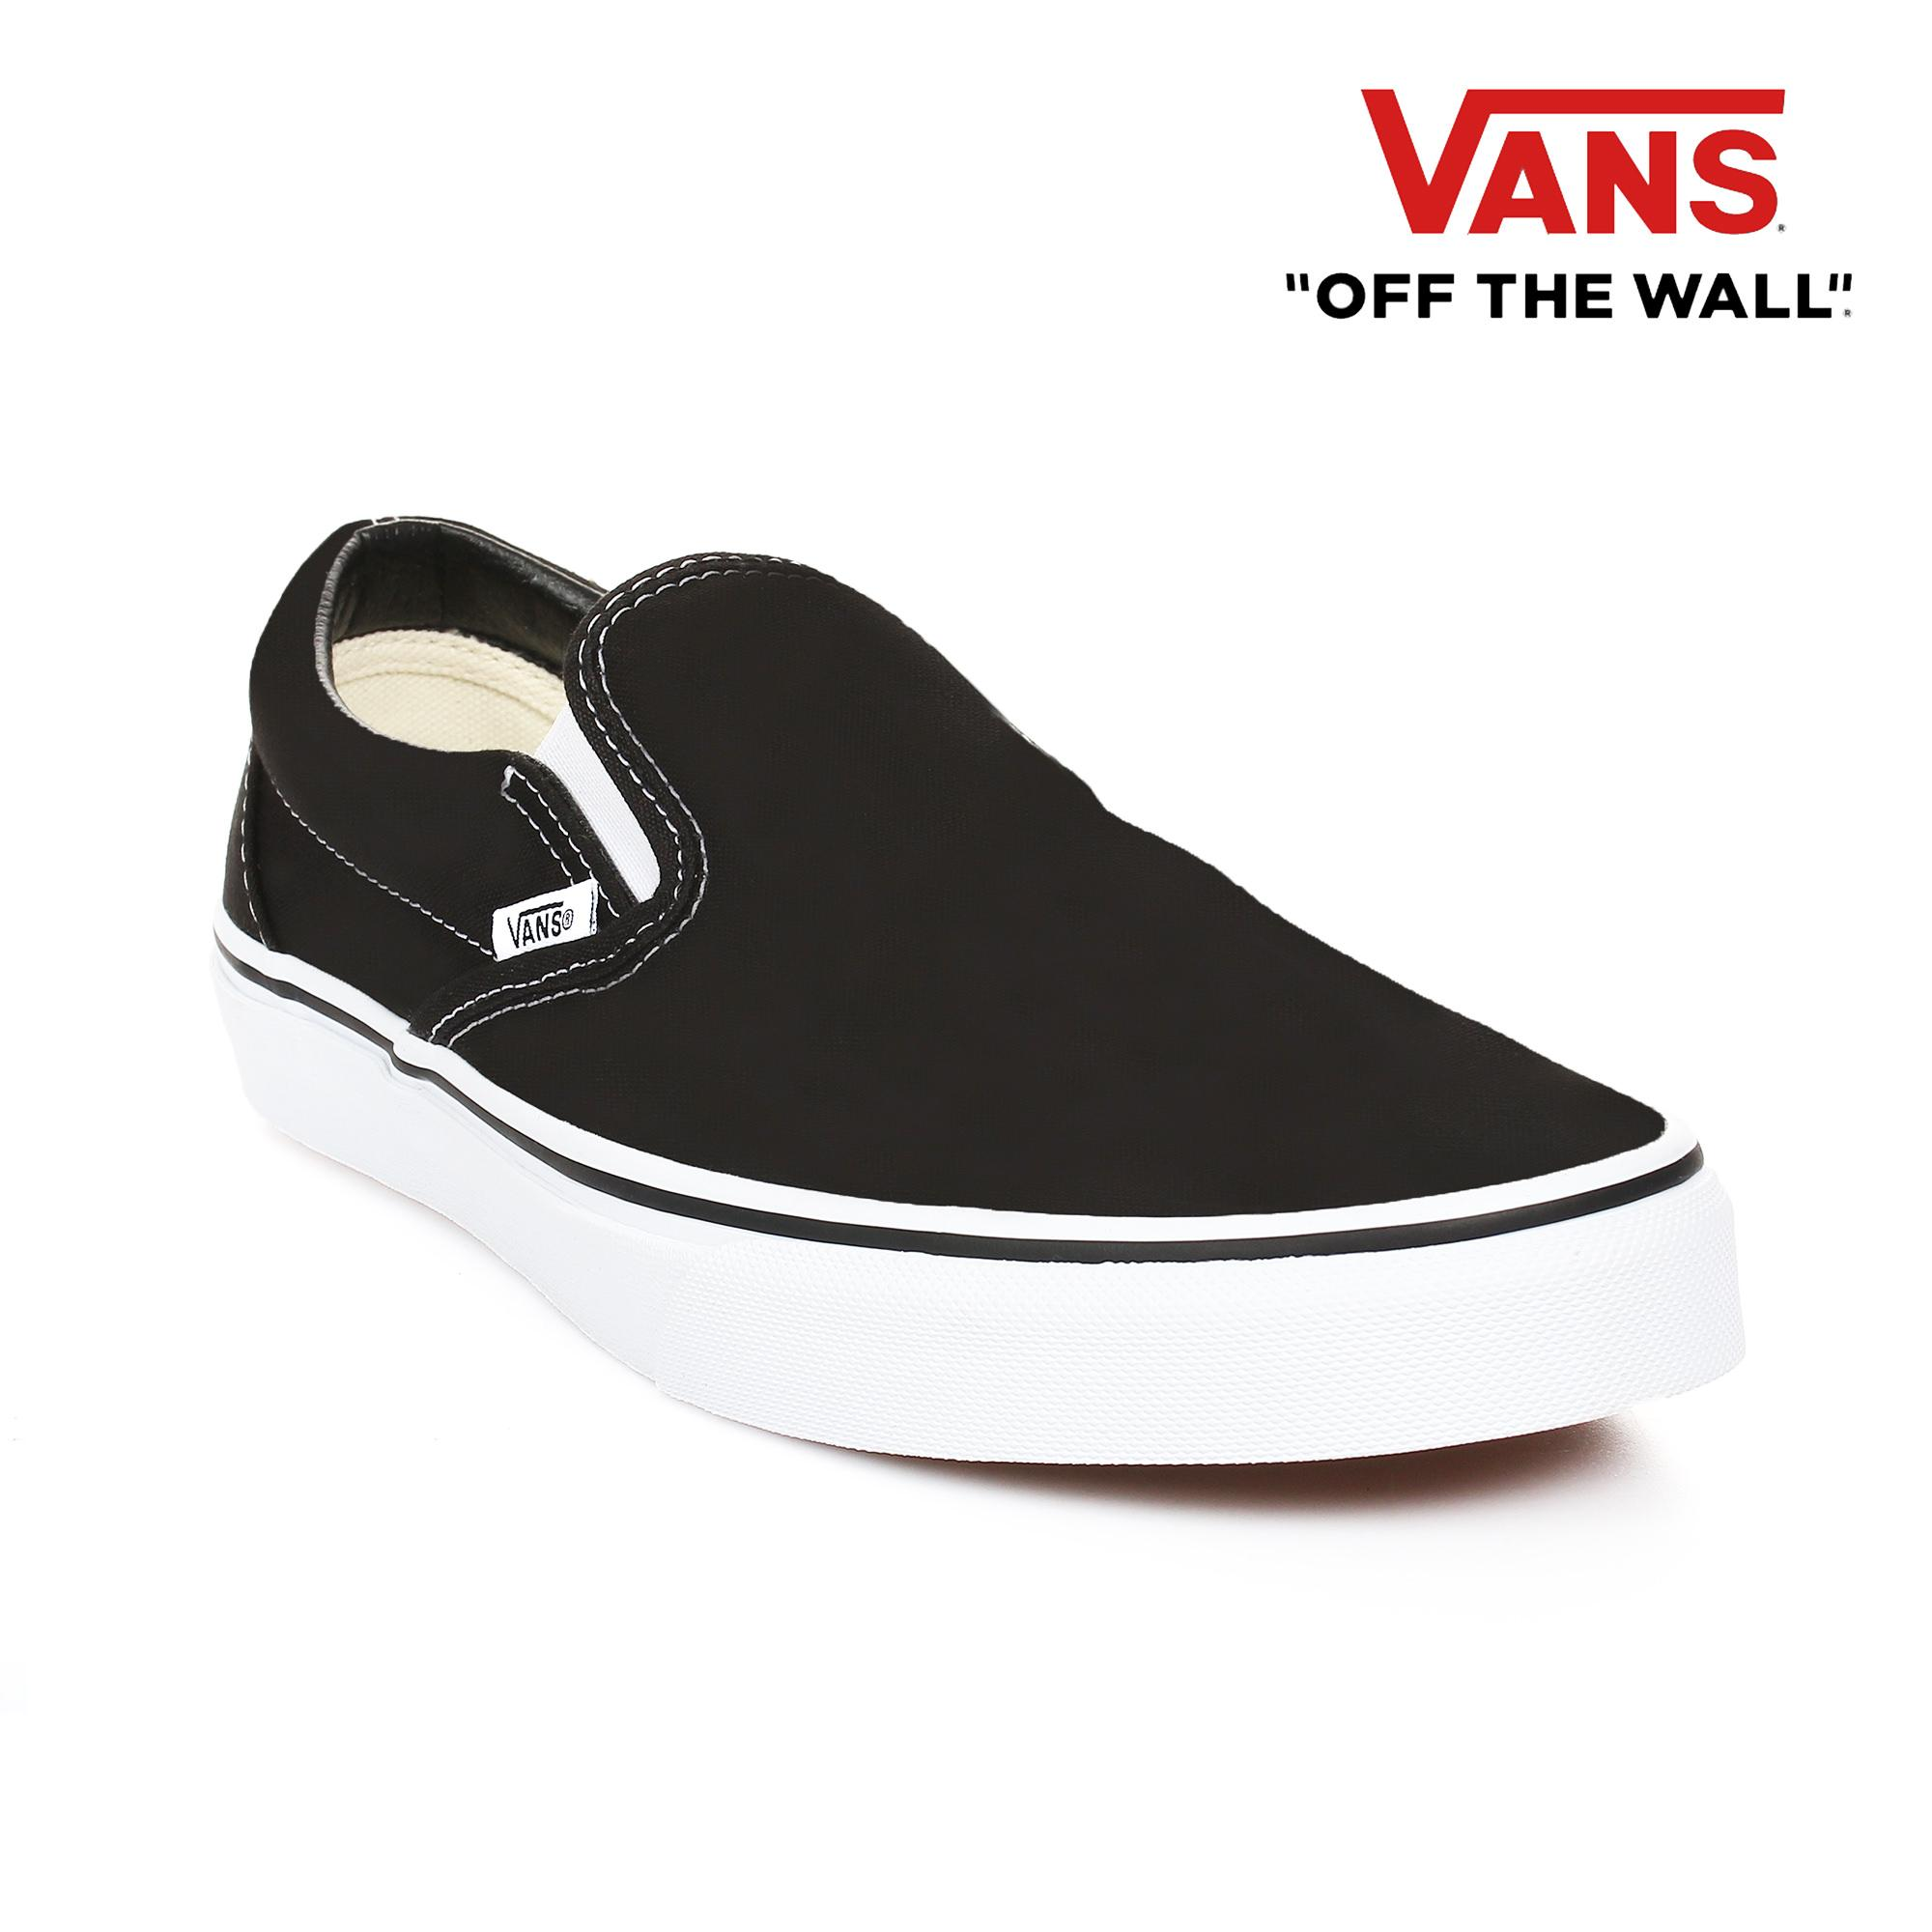 5859e9432d1 Vans Philippines -Vans Mens Fashion for sale - prices   reviews